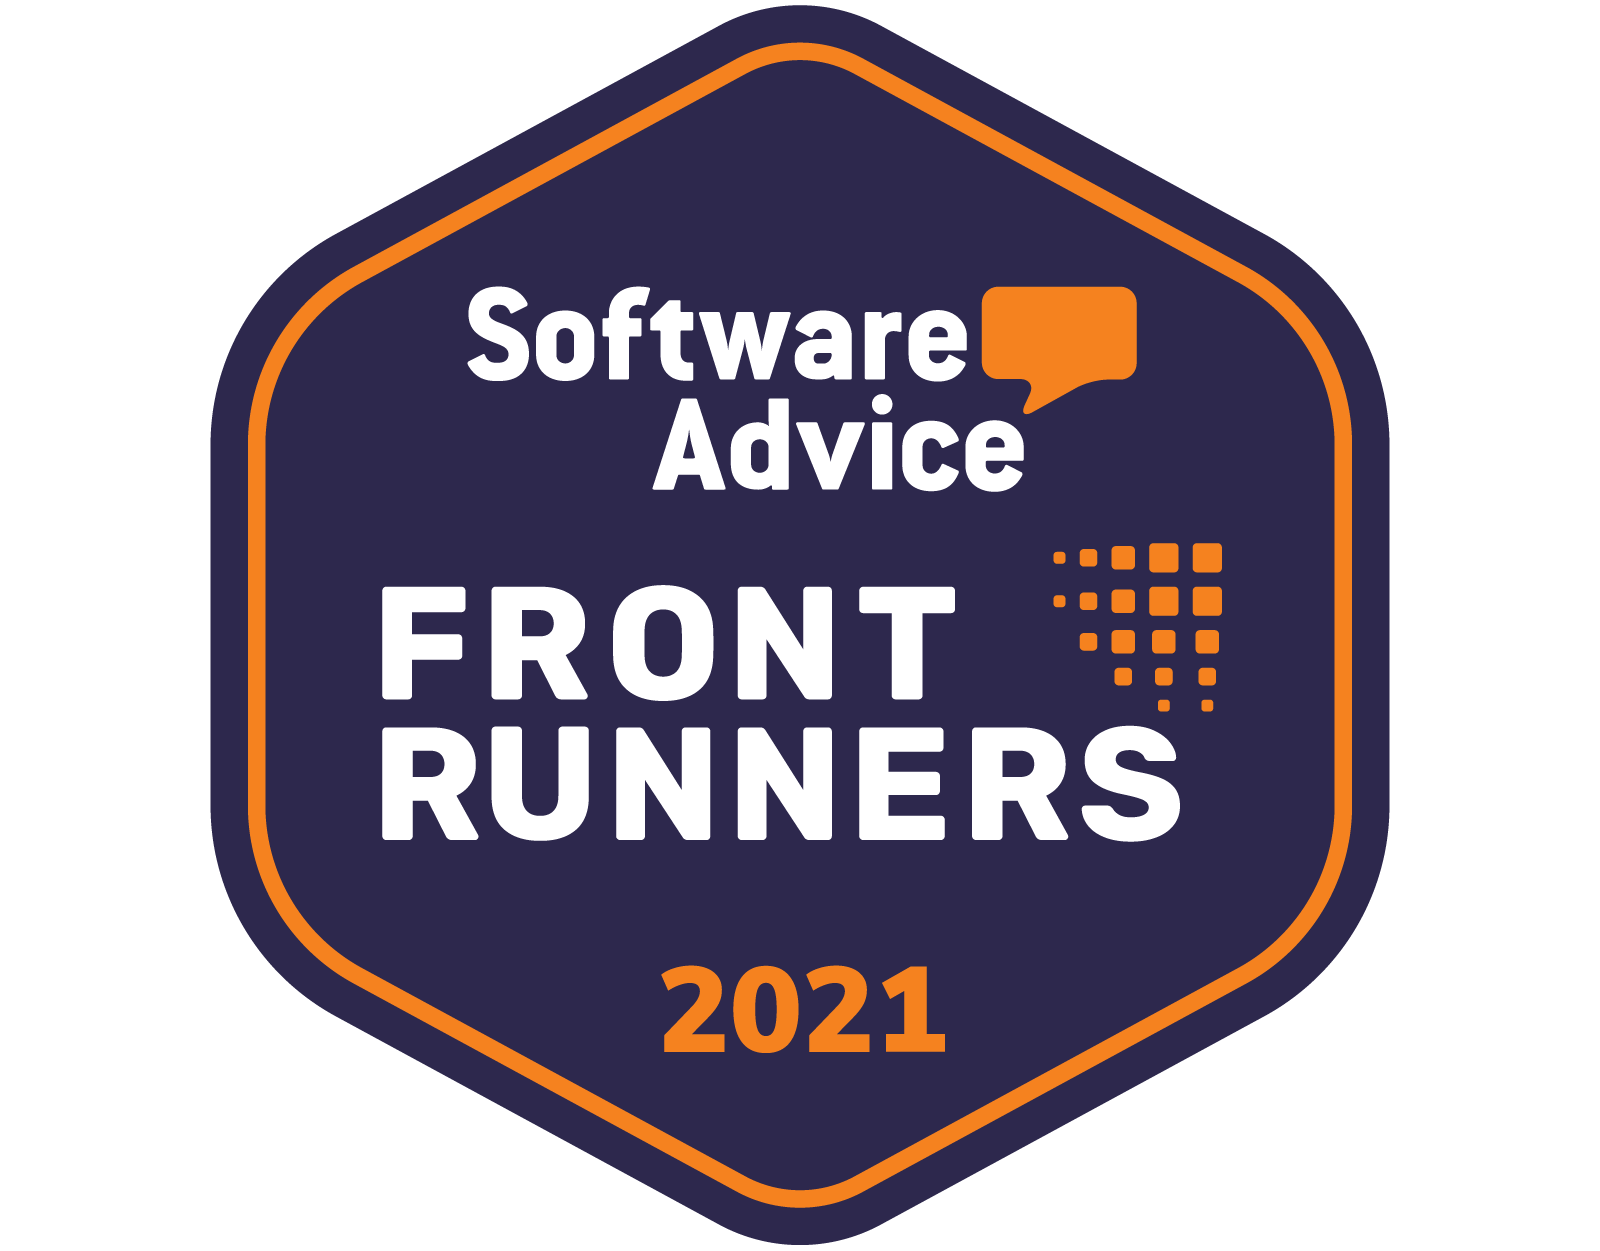 Software Advice Frontrunners for Law Practice Management Mar-21